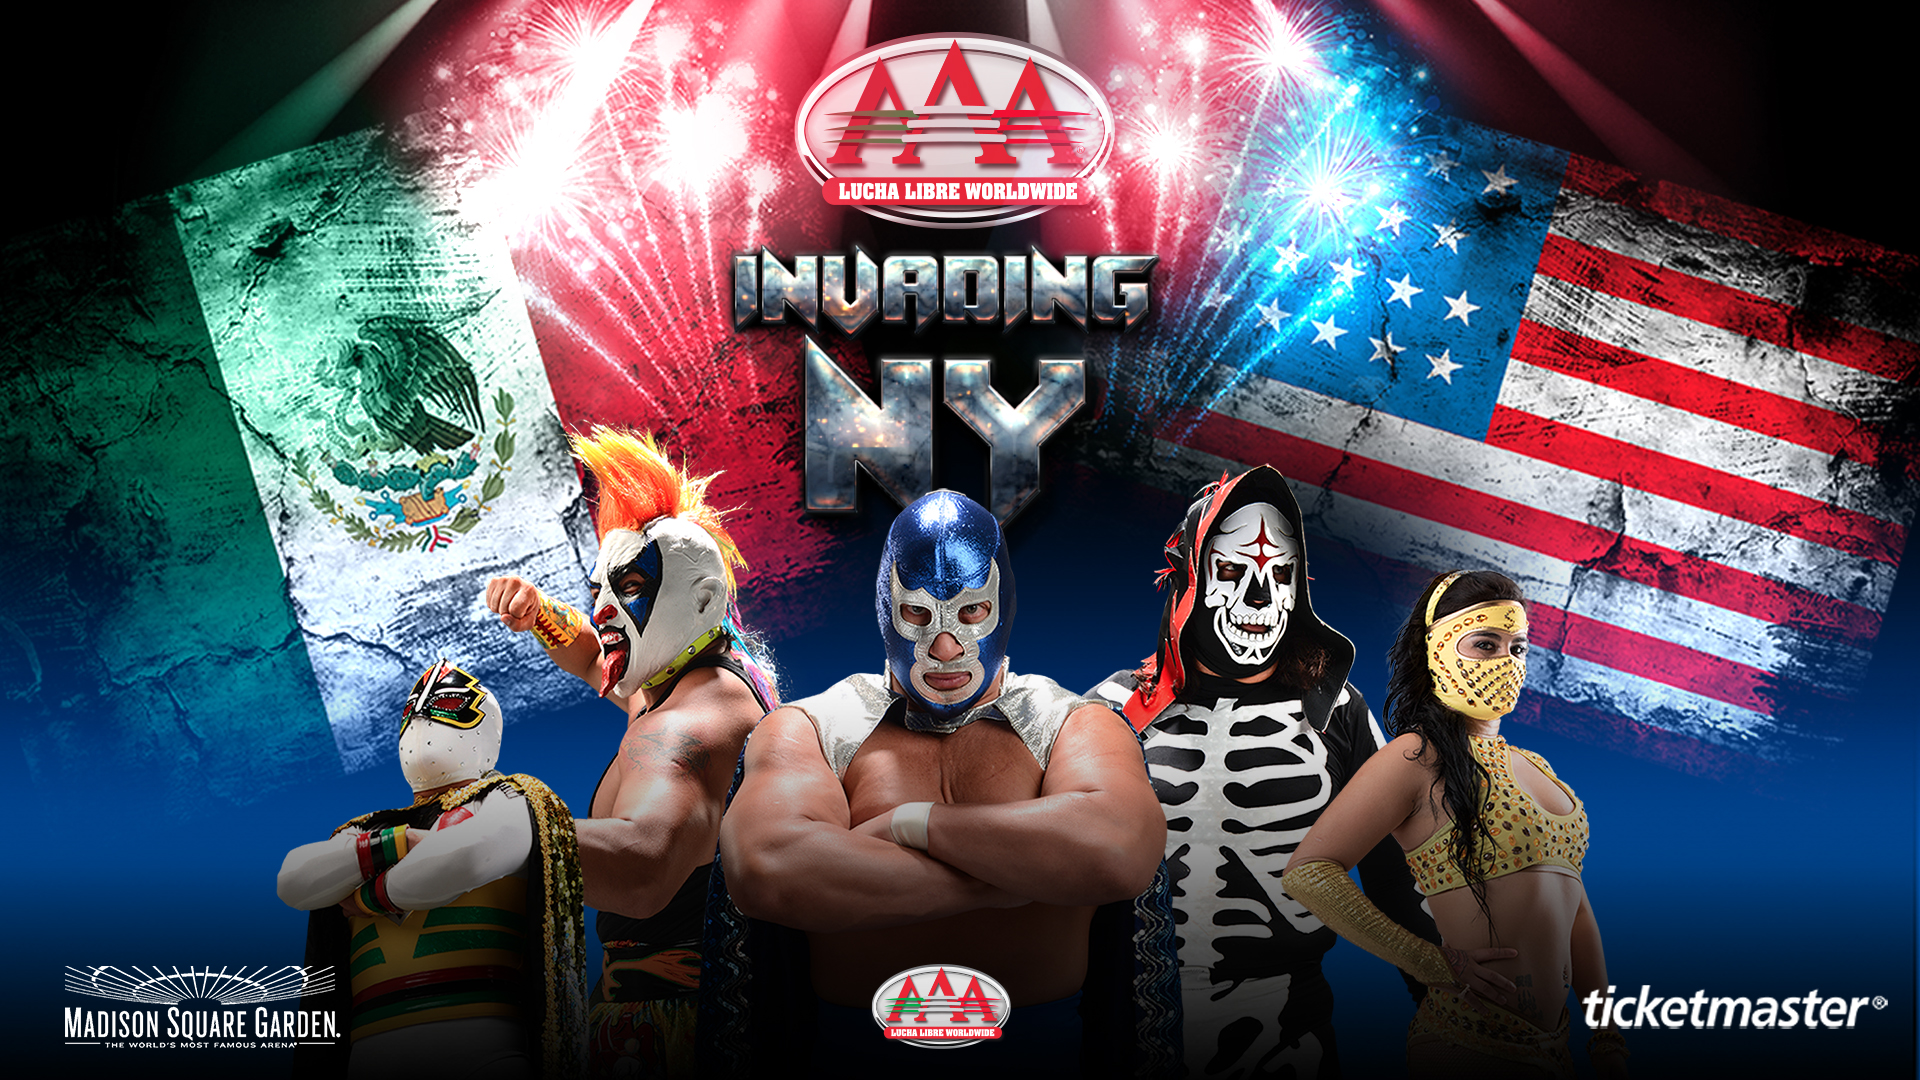 SUNDAY, SEPTEMBER 15, 2019 MADISON SQUARE GARDEN - MEXICO'S PREMIER LUCHA LIBRE WRESTLERS ARE COMING TO NEW YORK